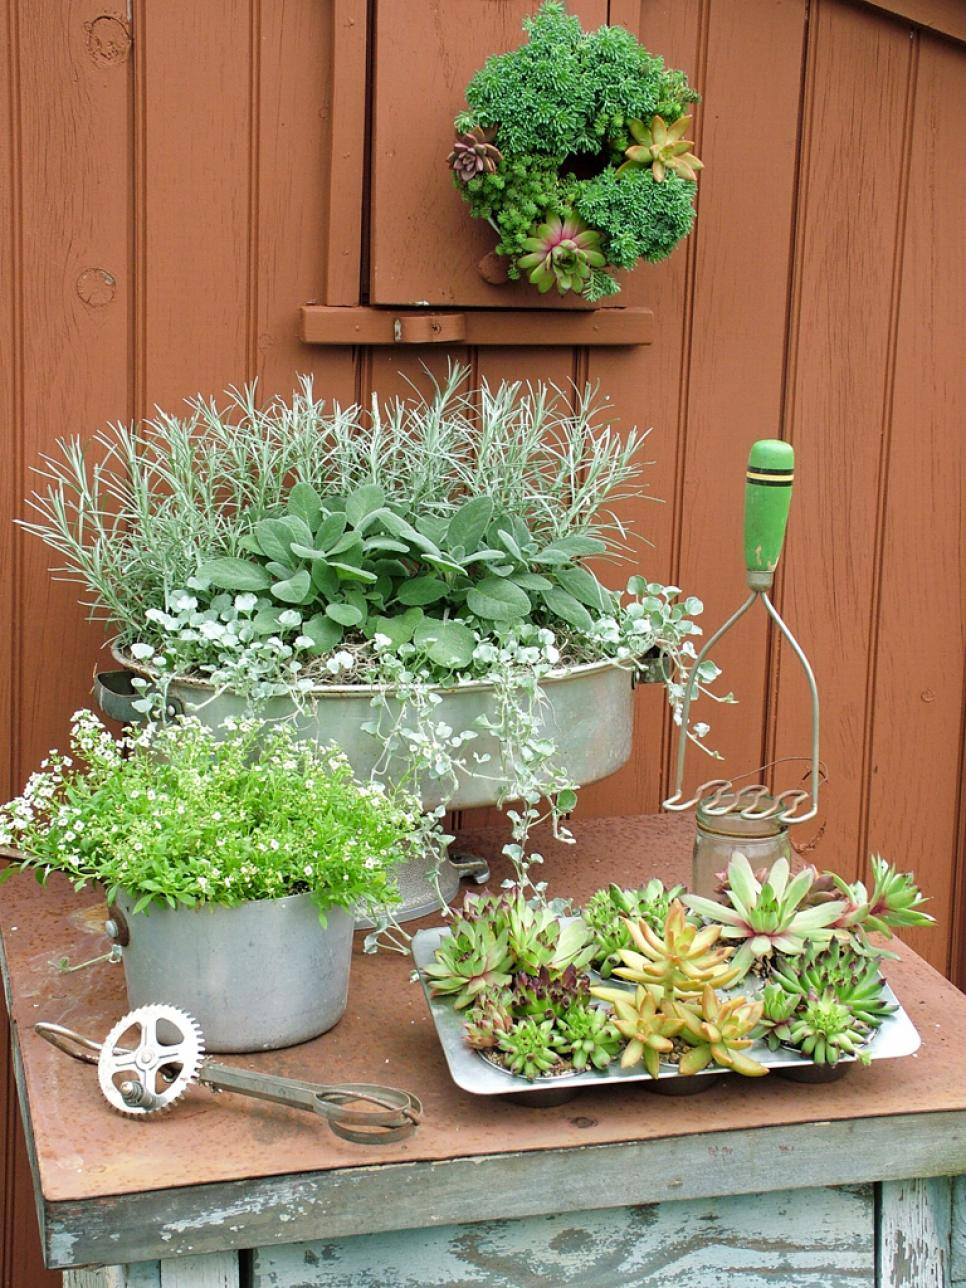 Original-Nancy-Ondra_unique-container-gardens-kitchen-containers-s3x4.jpg.rend_.hgtvcom.966.1288